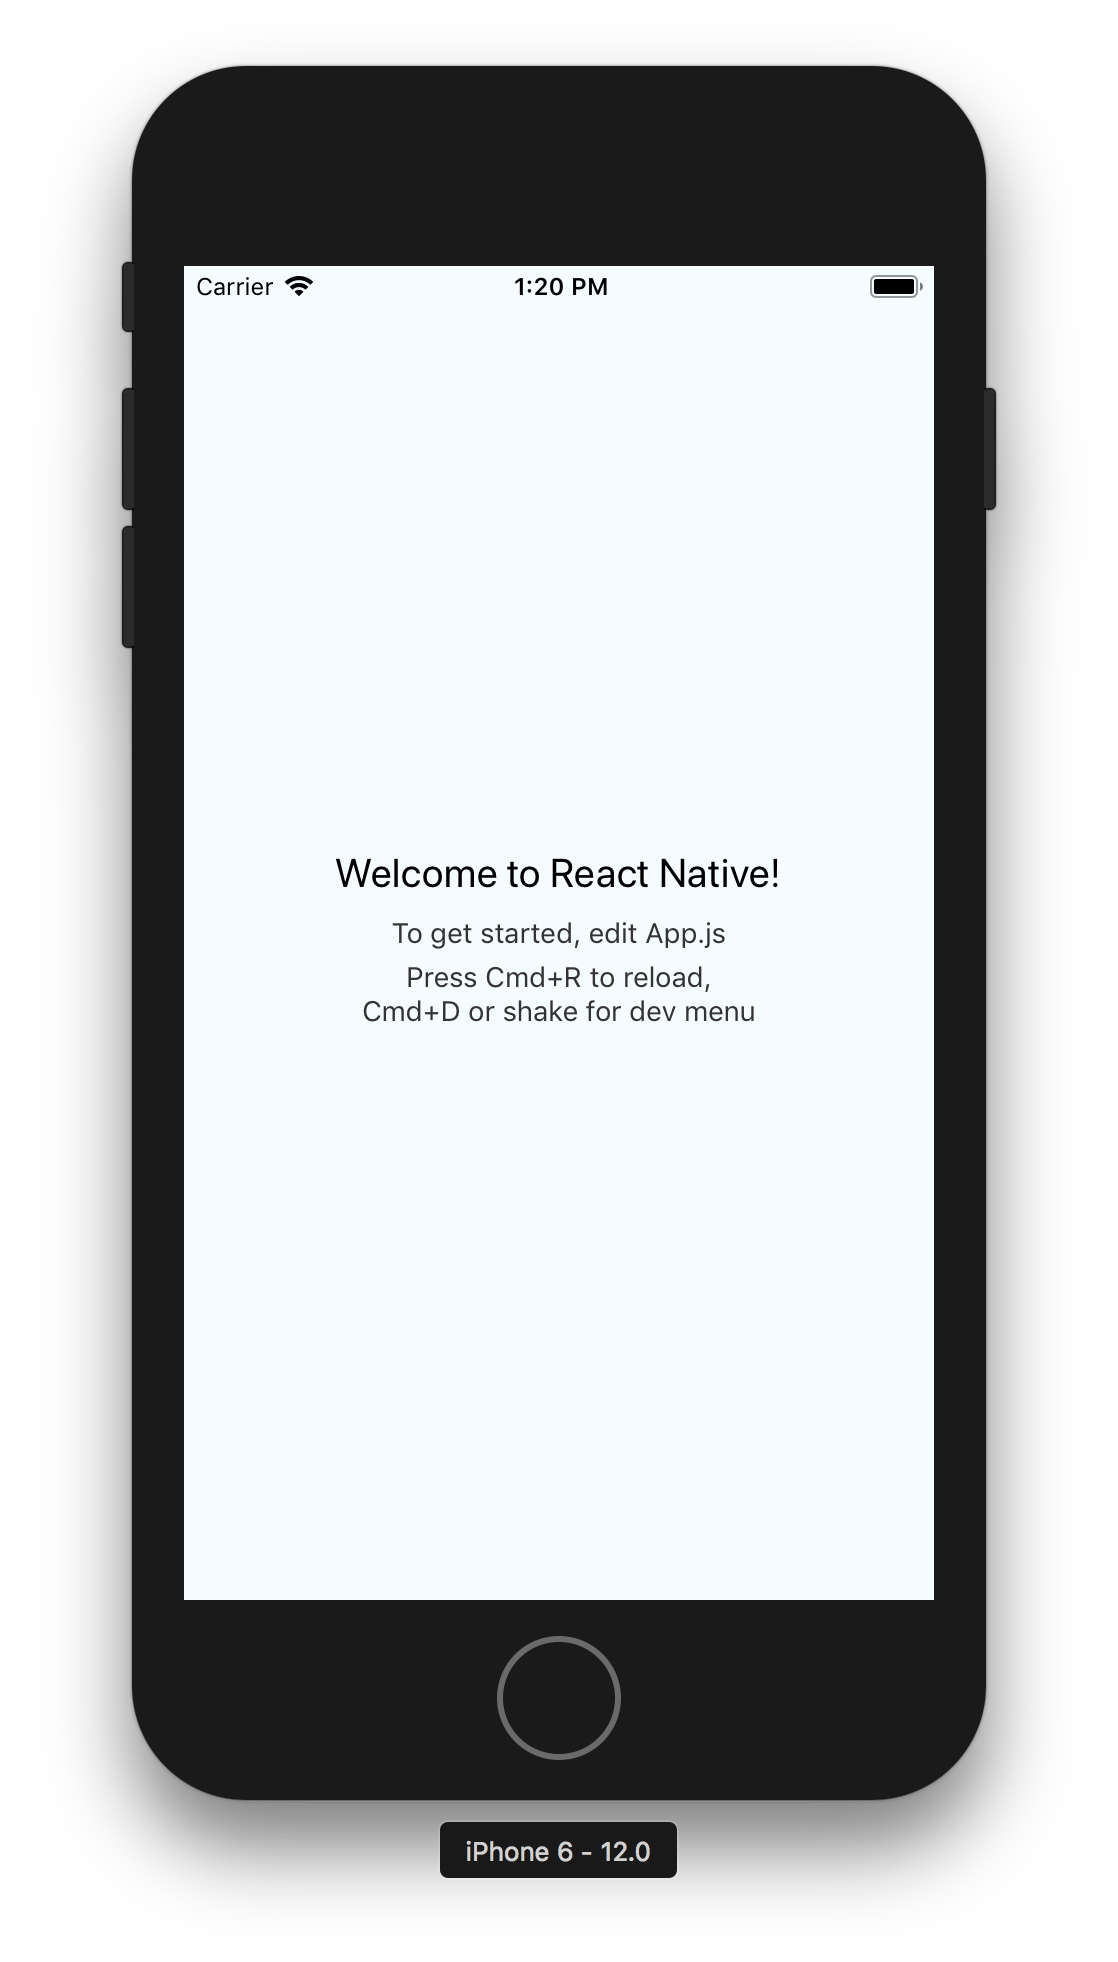 Build a React Native Application and Authenticate with OAuth